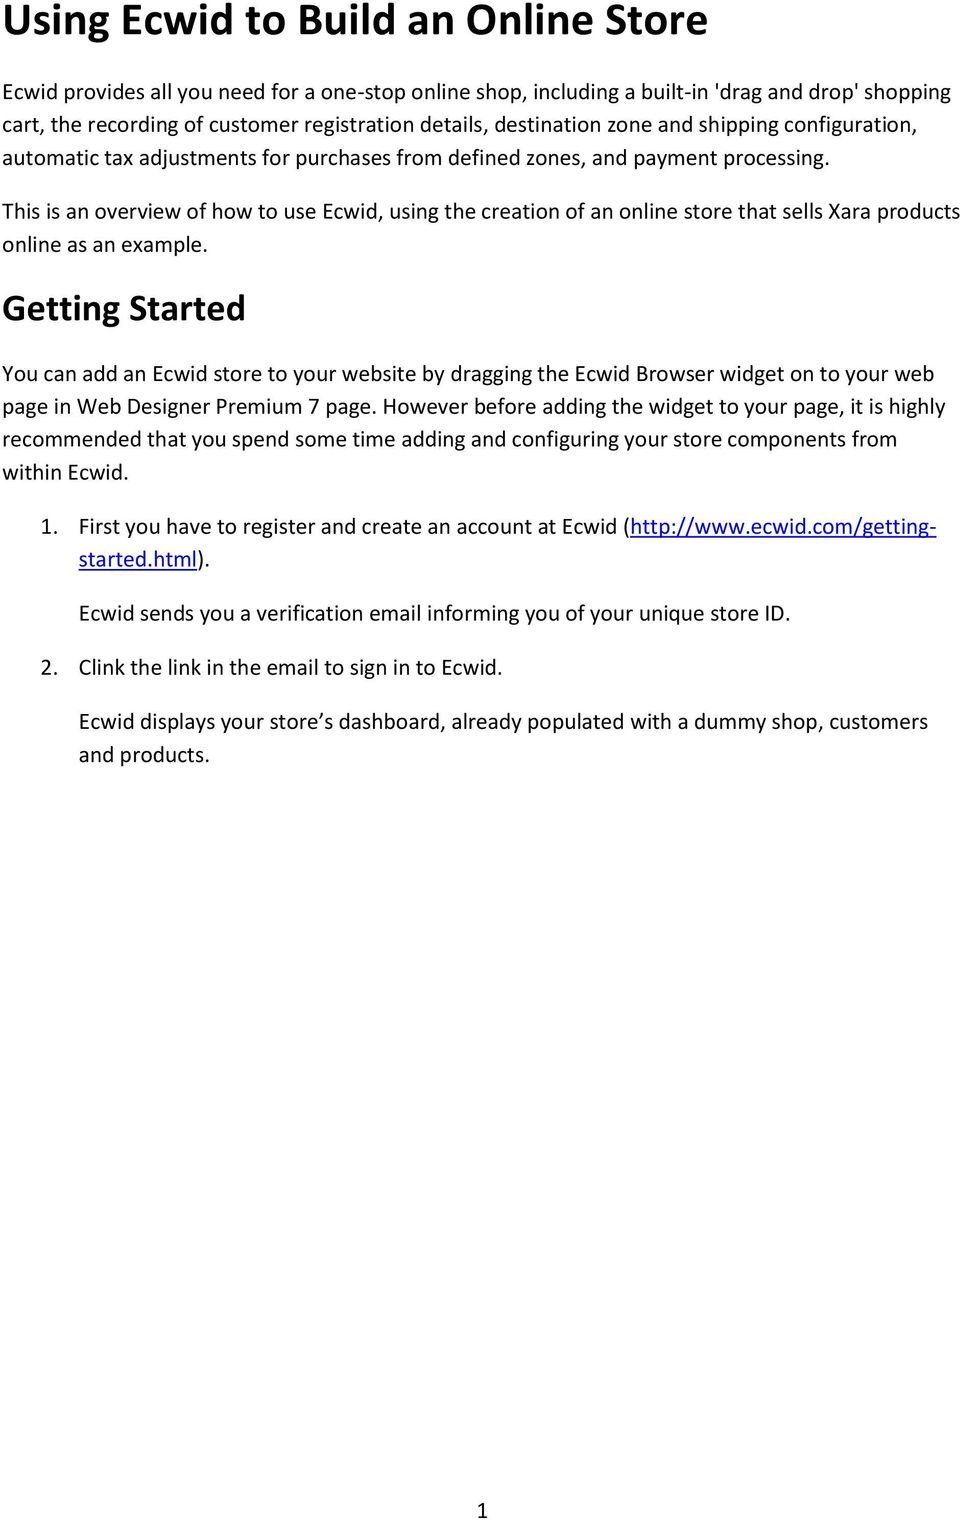 This is an overview of how to use Ecwid, using the creation of an online store that sells Xara products online as an example.